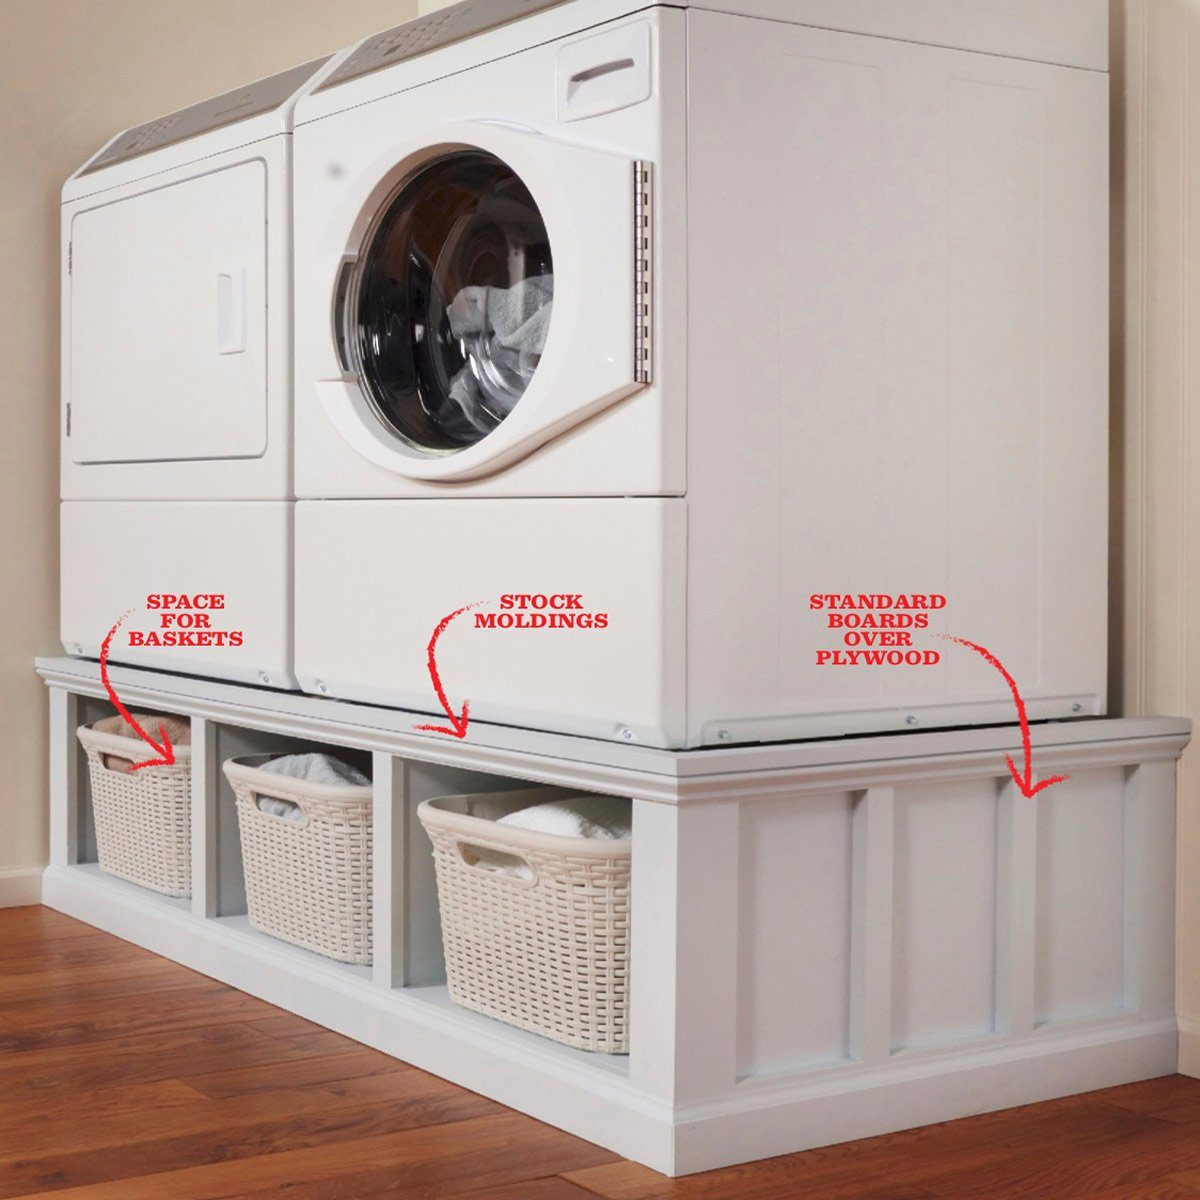 25 Inexpensive Laundry Room Updates You Can Diy Family